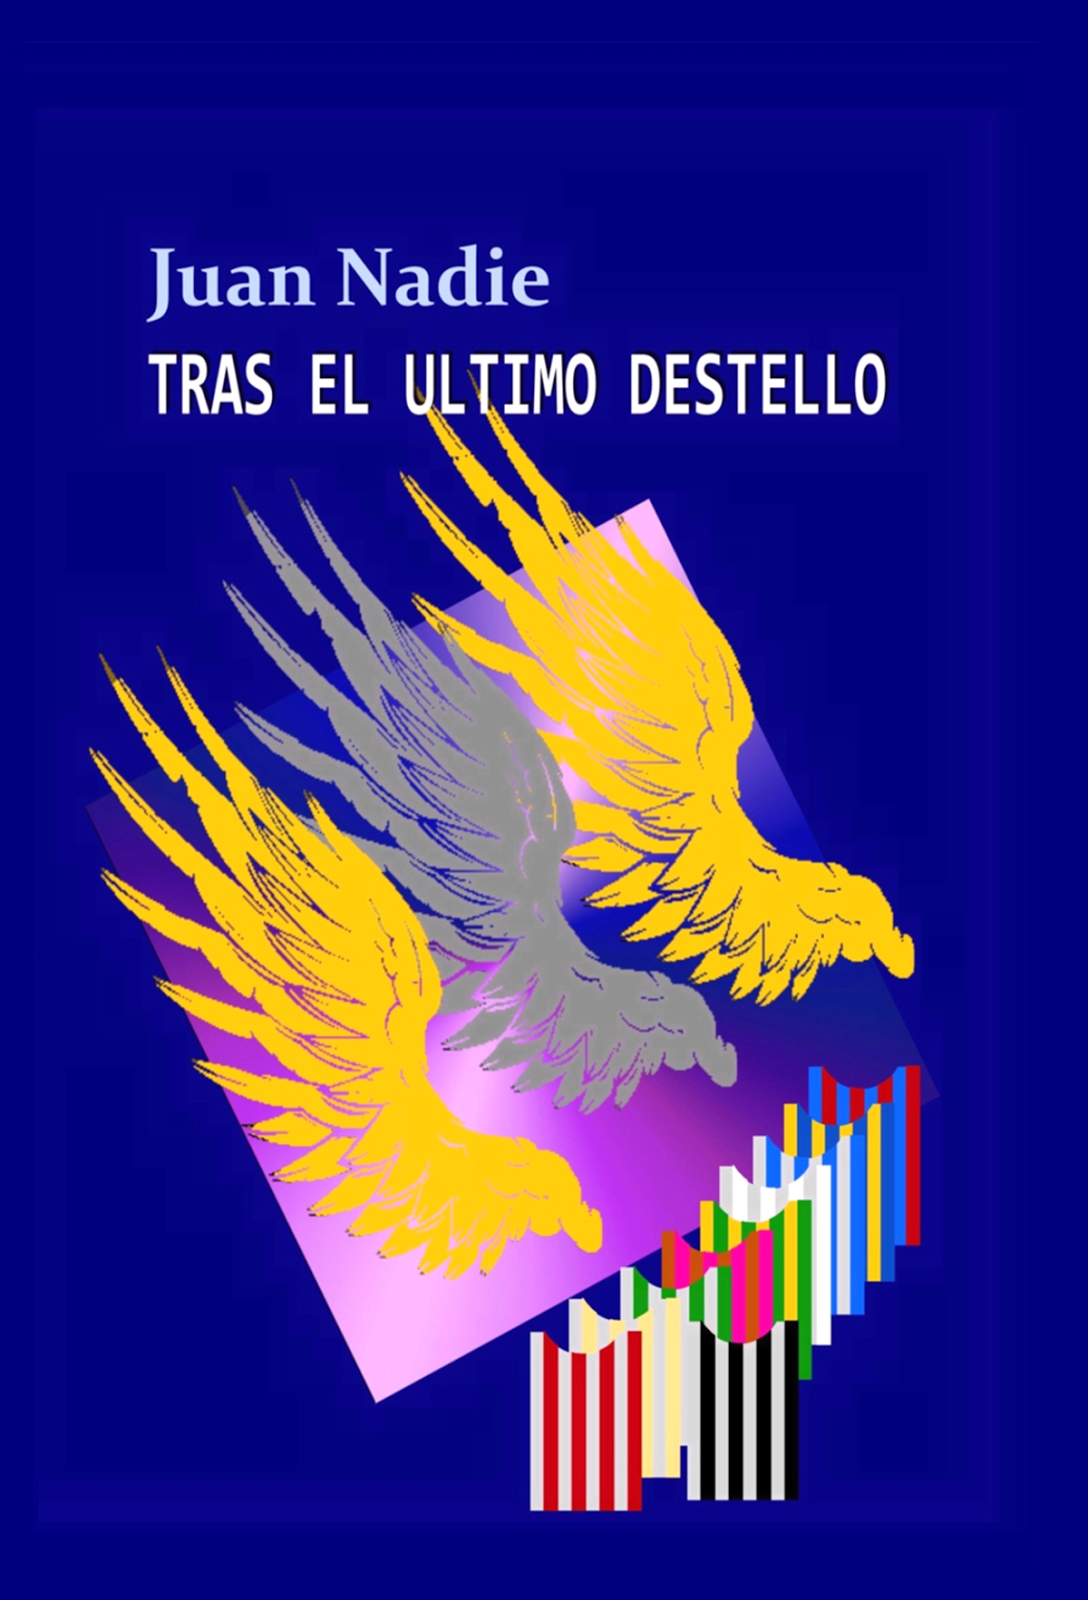 http://www.amazon.es/Tras-%C3%BAltimo-destello-Juan-Nadie-ebook/dp/B00JJRMTOA/ref=sr_1_2?s=digital-text&ie=UTF8&qid=1410165255&sr=1-2